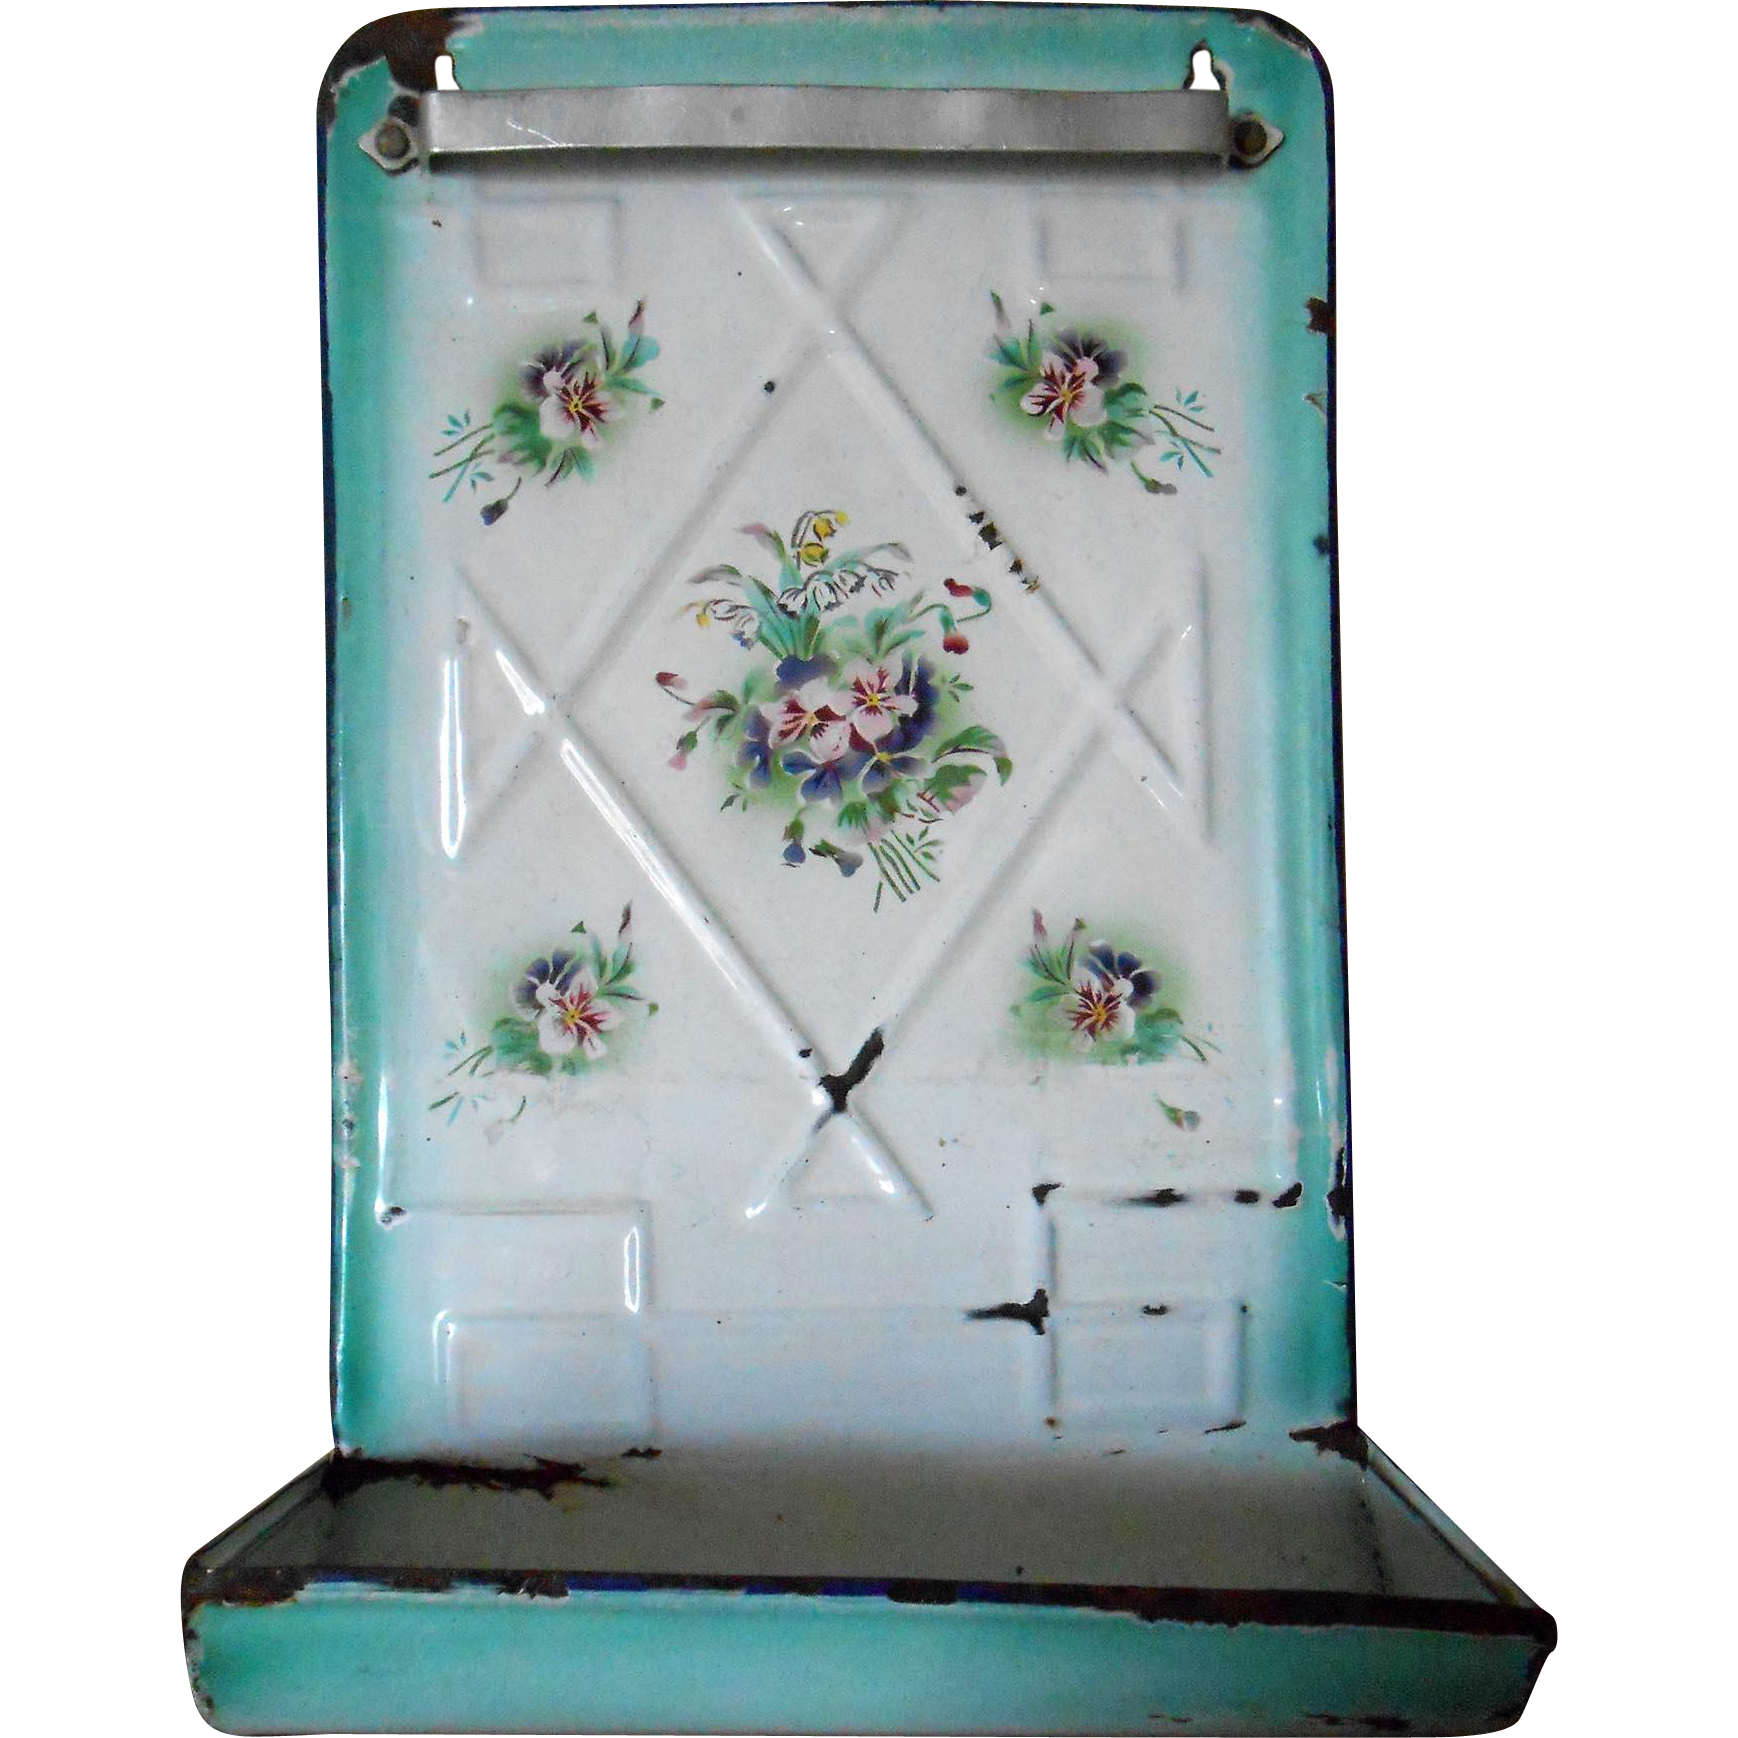 Vintage Enamelware French Utensil Rack with Pansies Turquoise Design